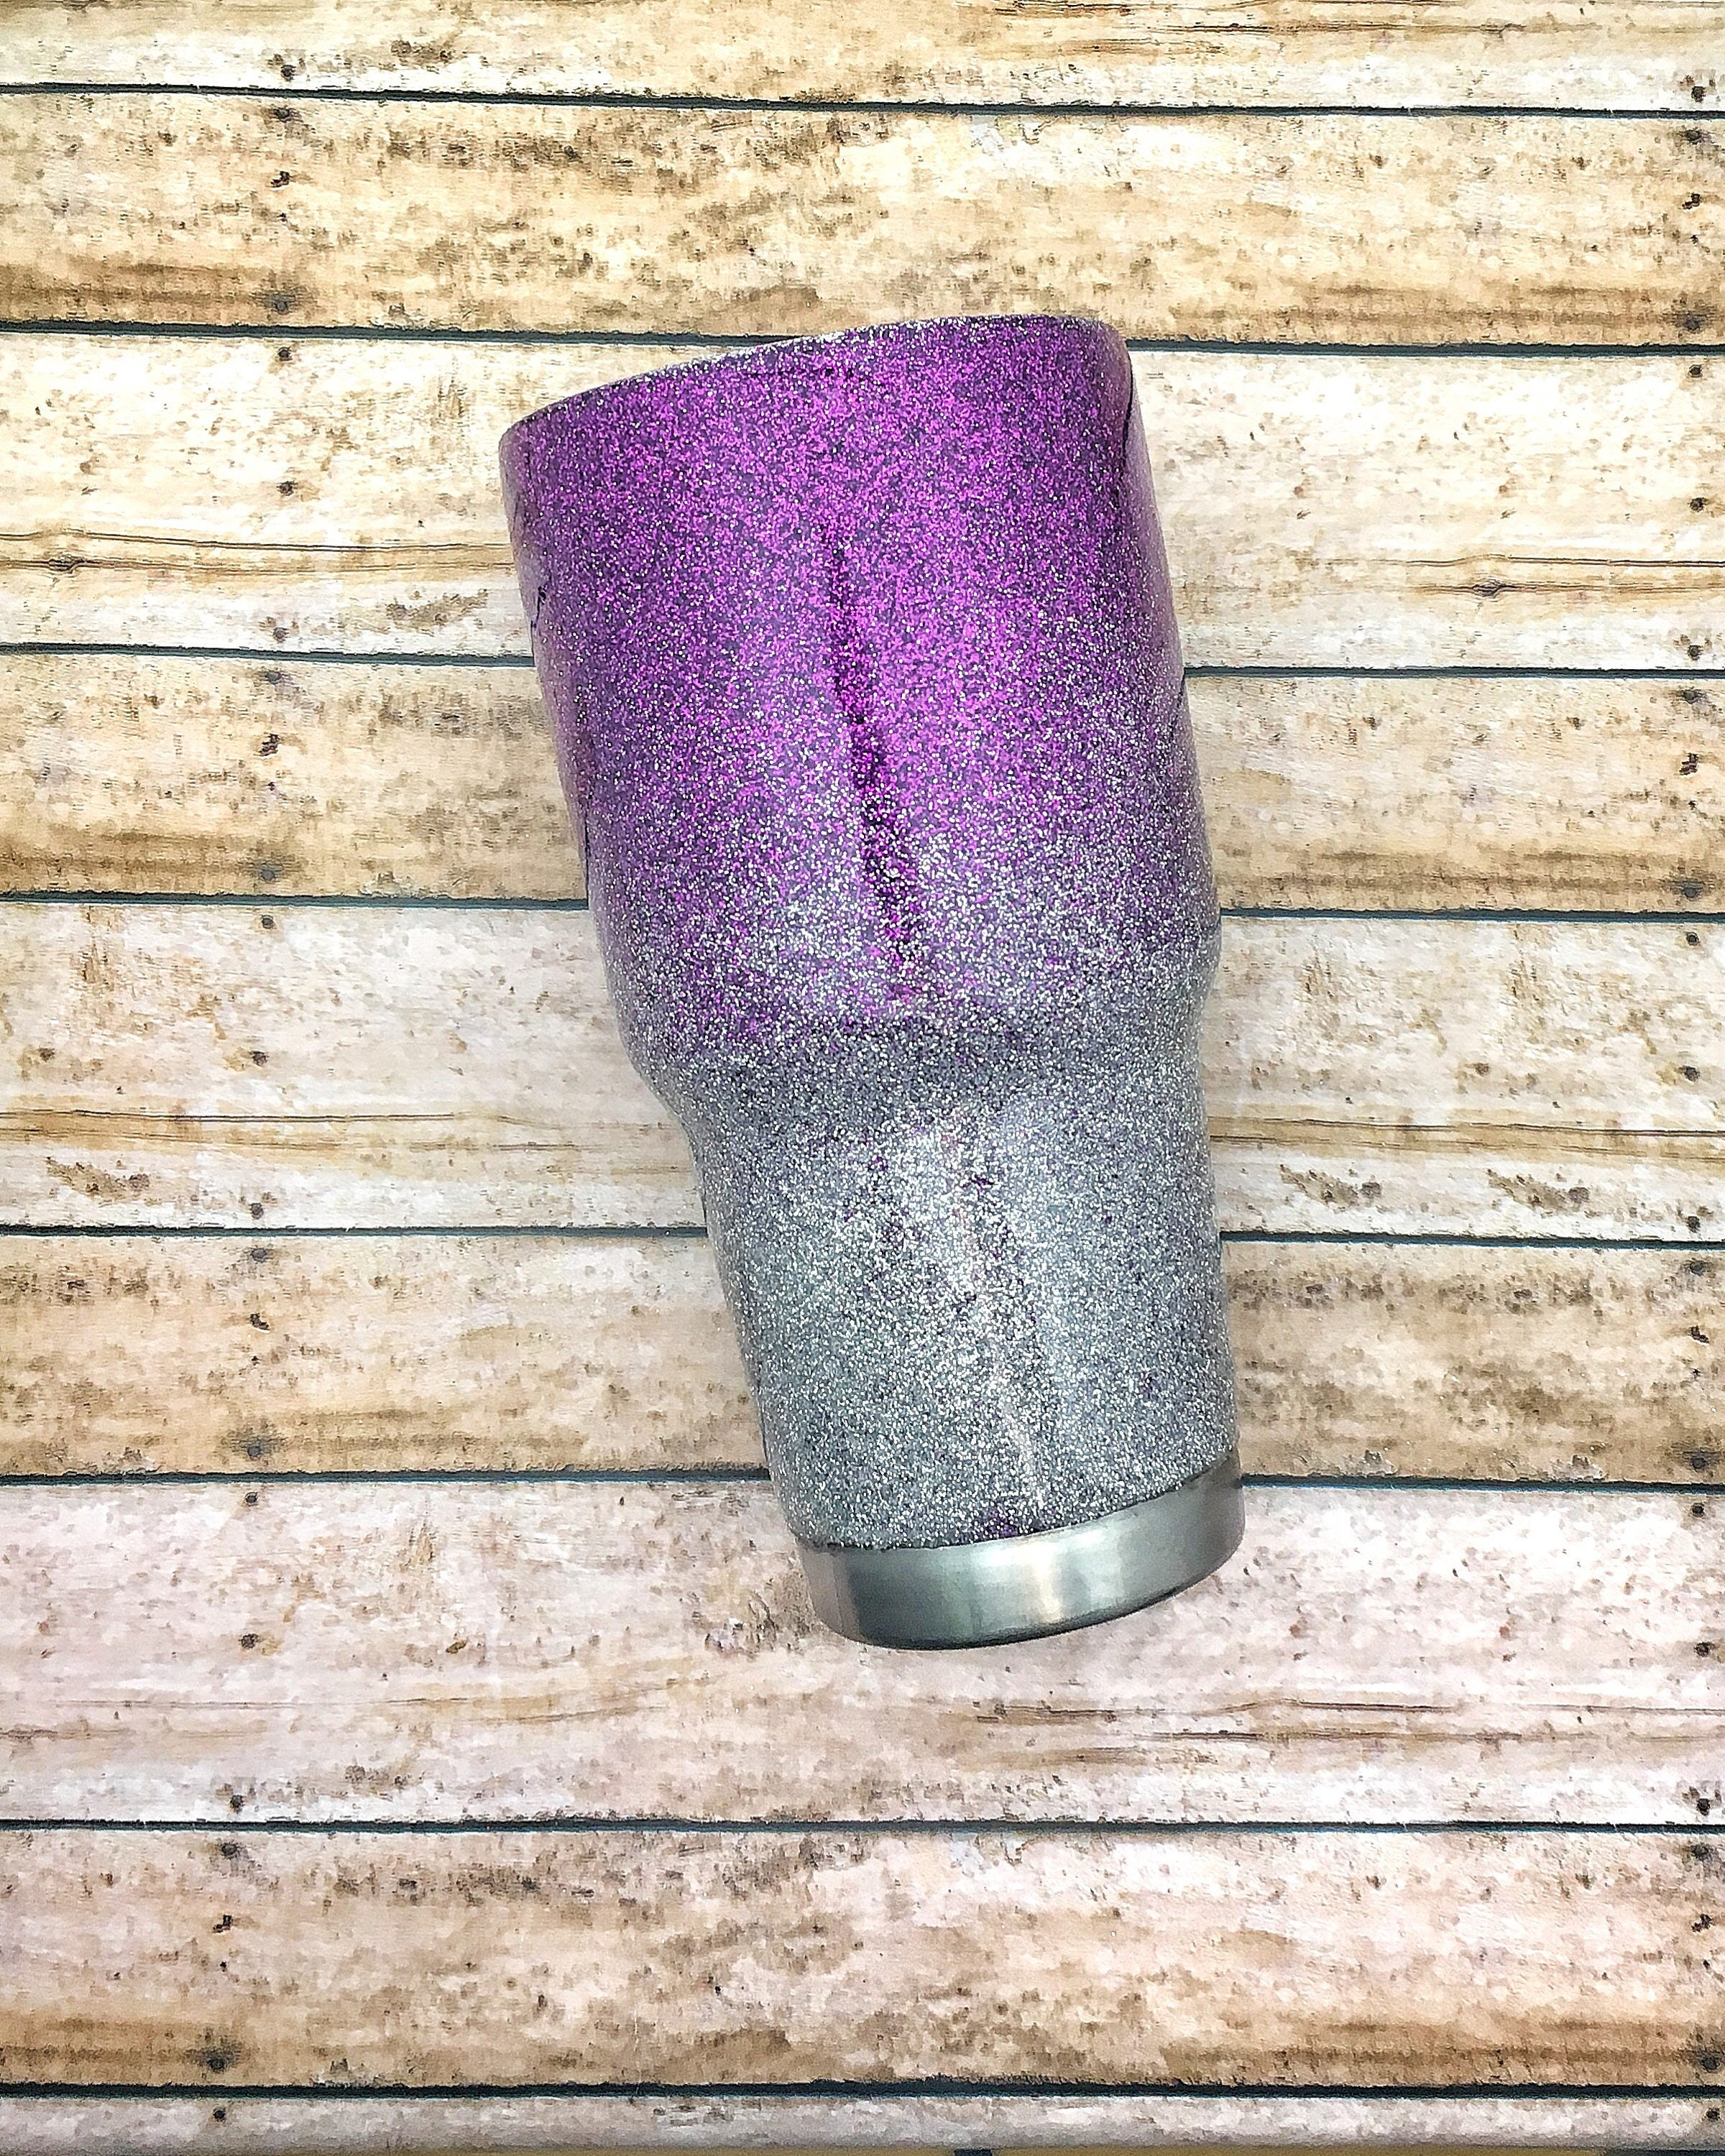 Ombre Glitter Eye Makeup Brushes Set Rose Gold In Make Up: Purple Glitter Cup-Ombre Glitter Cup-Purple Ombre Cup